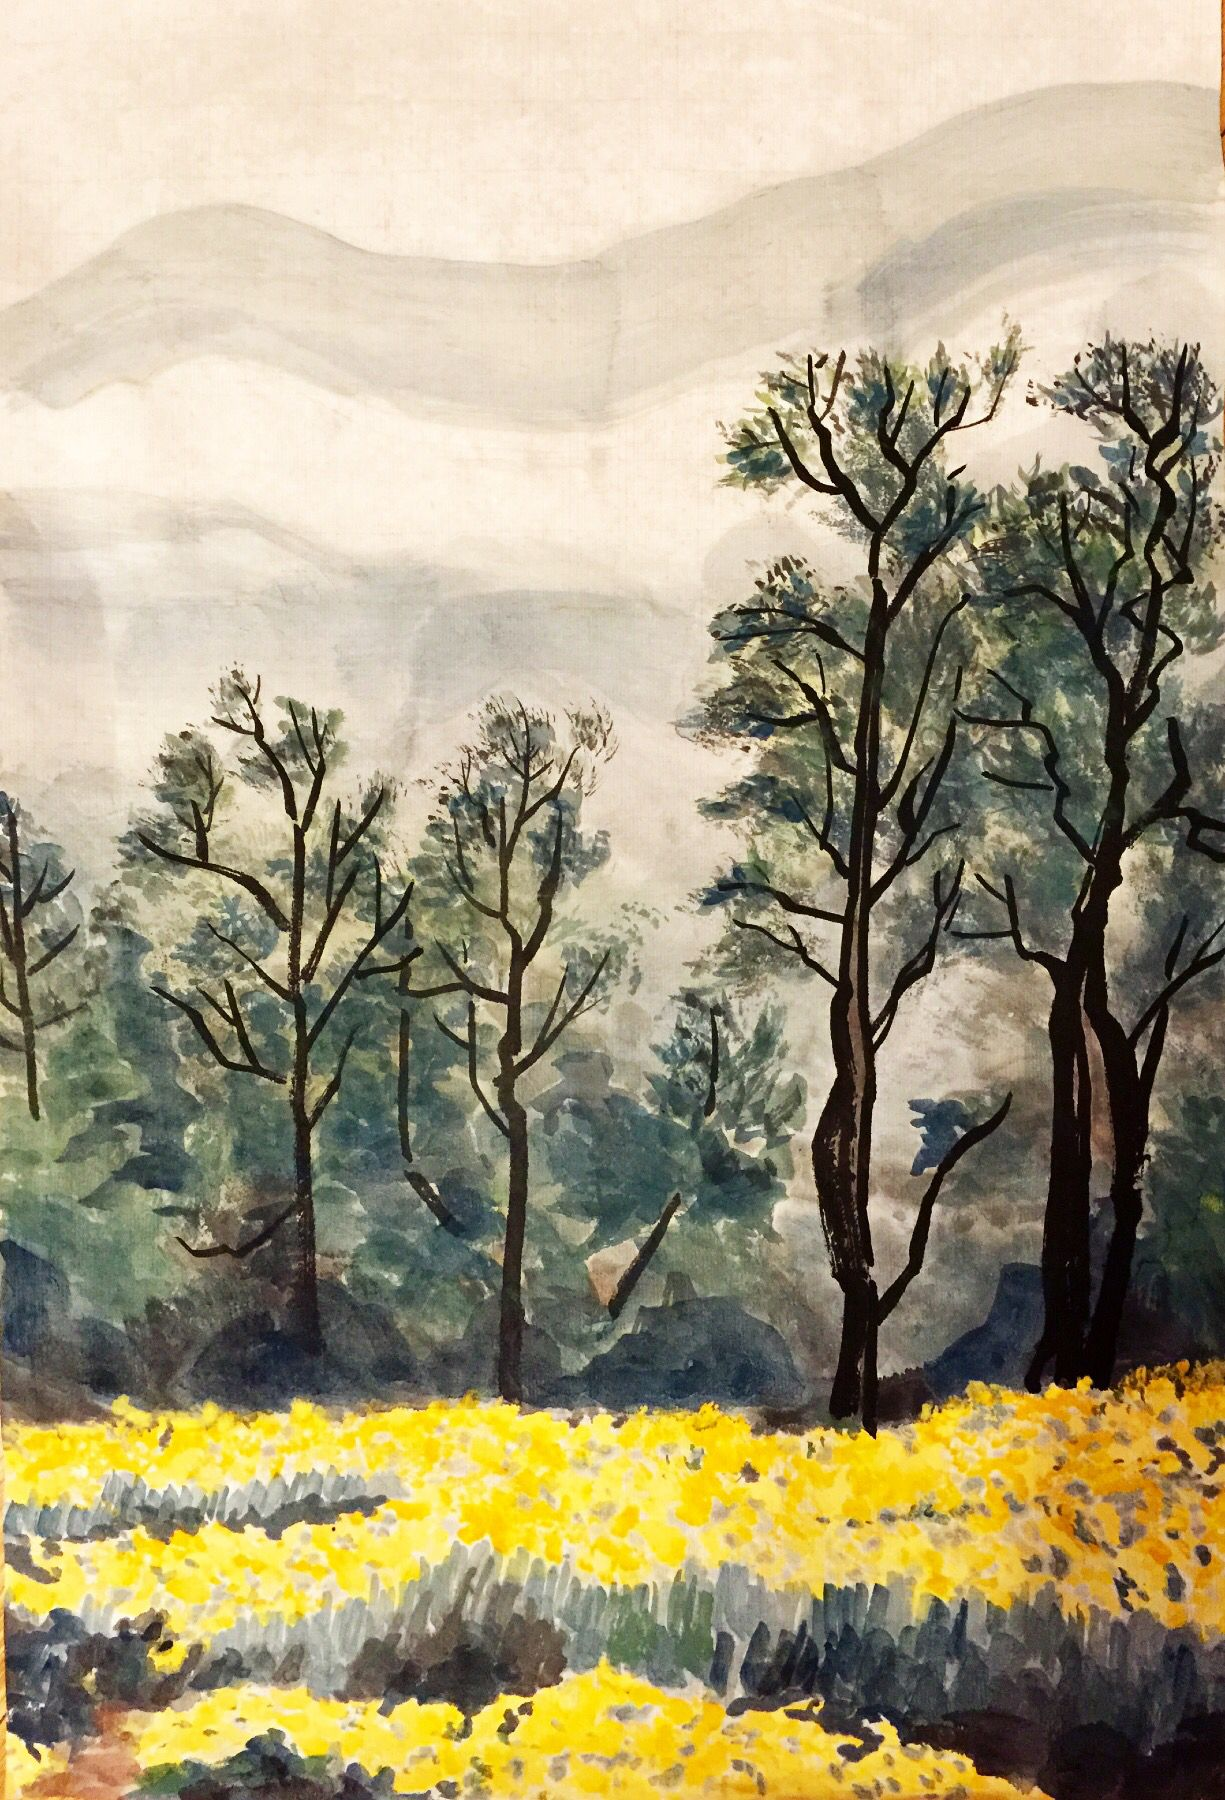 Yellow Flowers Blooming Chinese Landscape Painting Landscape Paintings Chinese Landscape